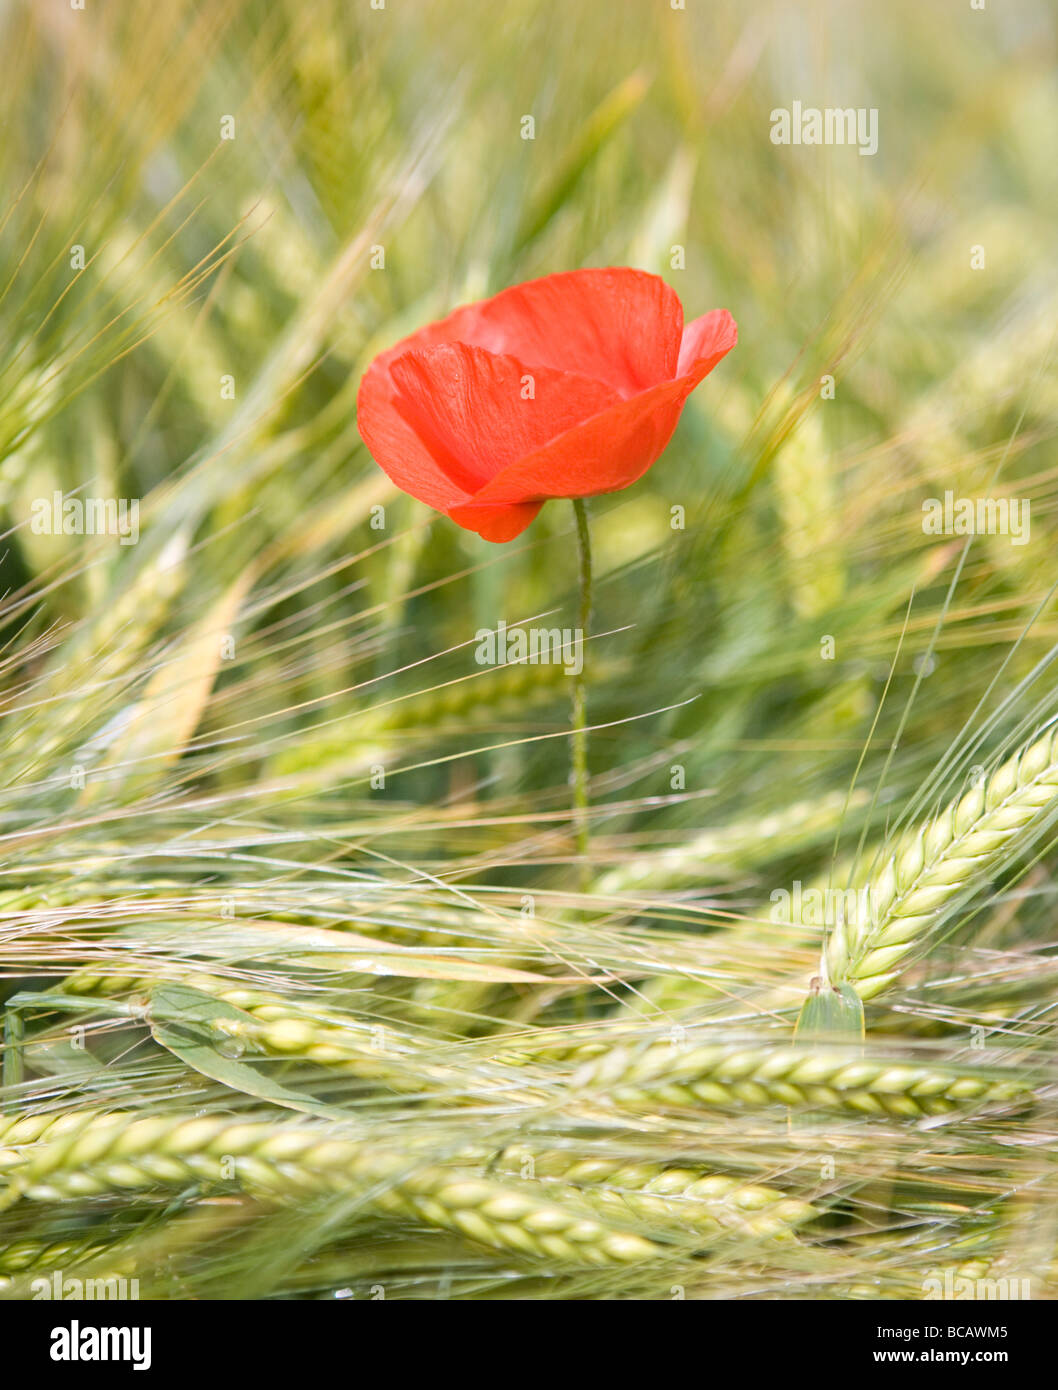 Red Poppy flower in field of wheat in Kent, United Kingdom. - Stock Image